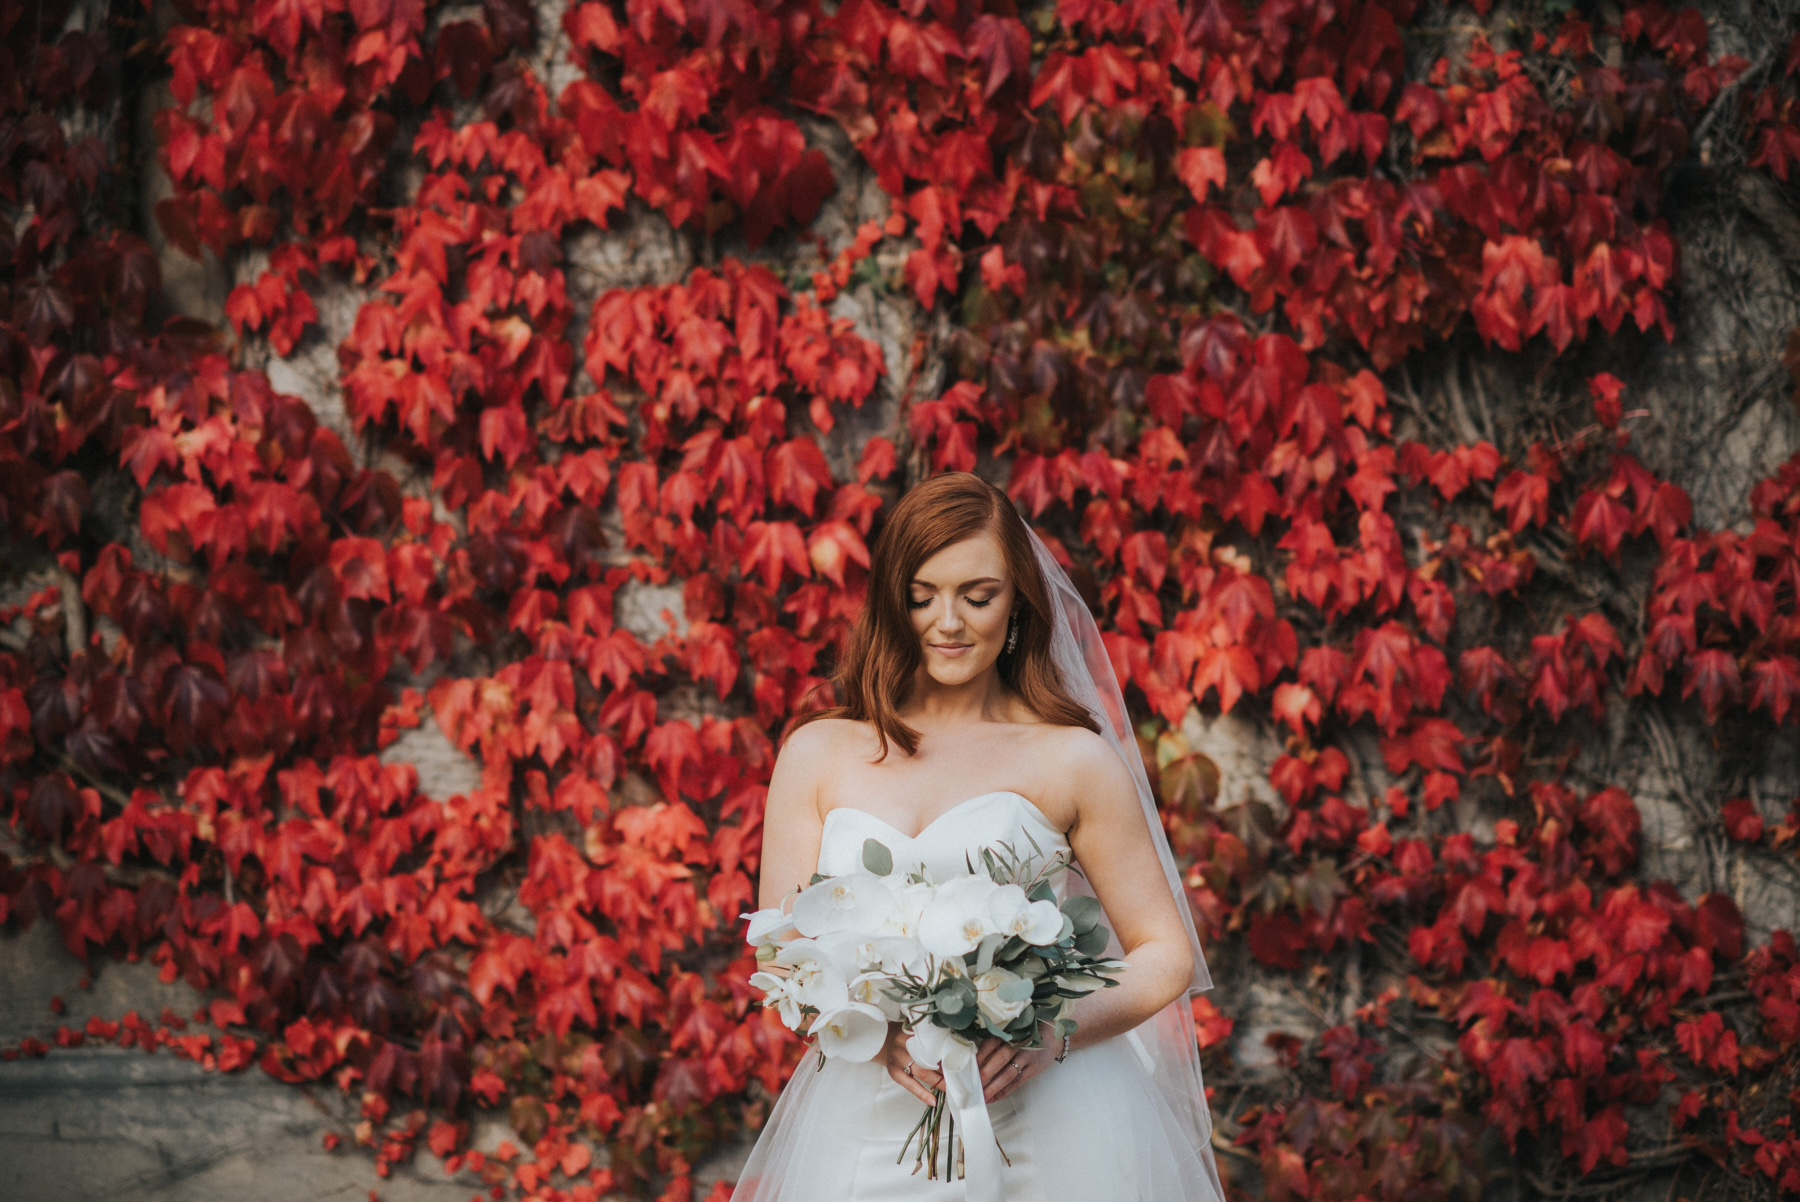 CoraAnderson//Glasgowweddingflowers